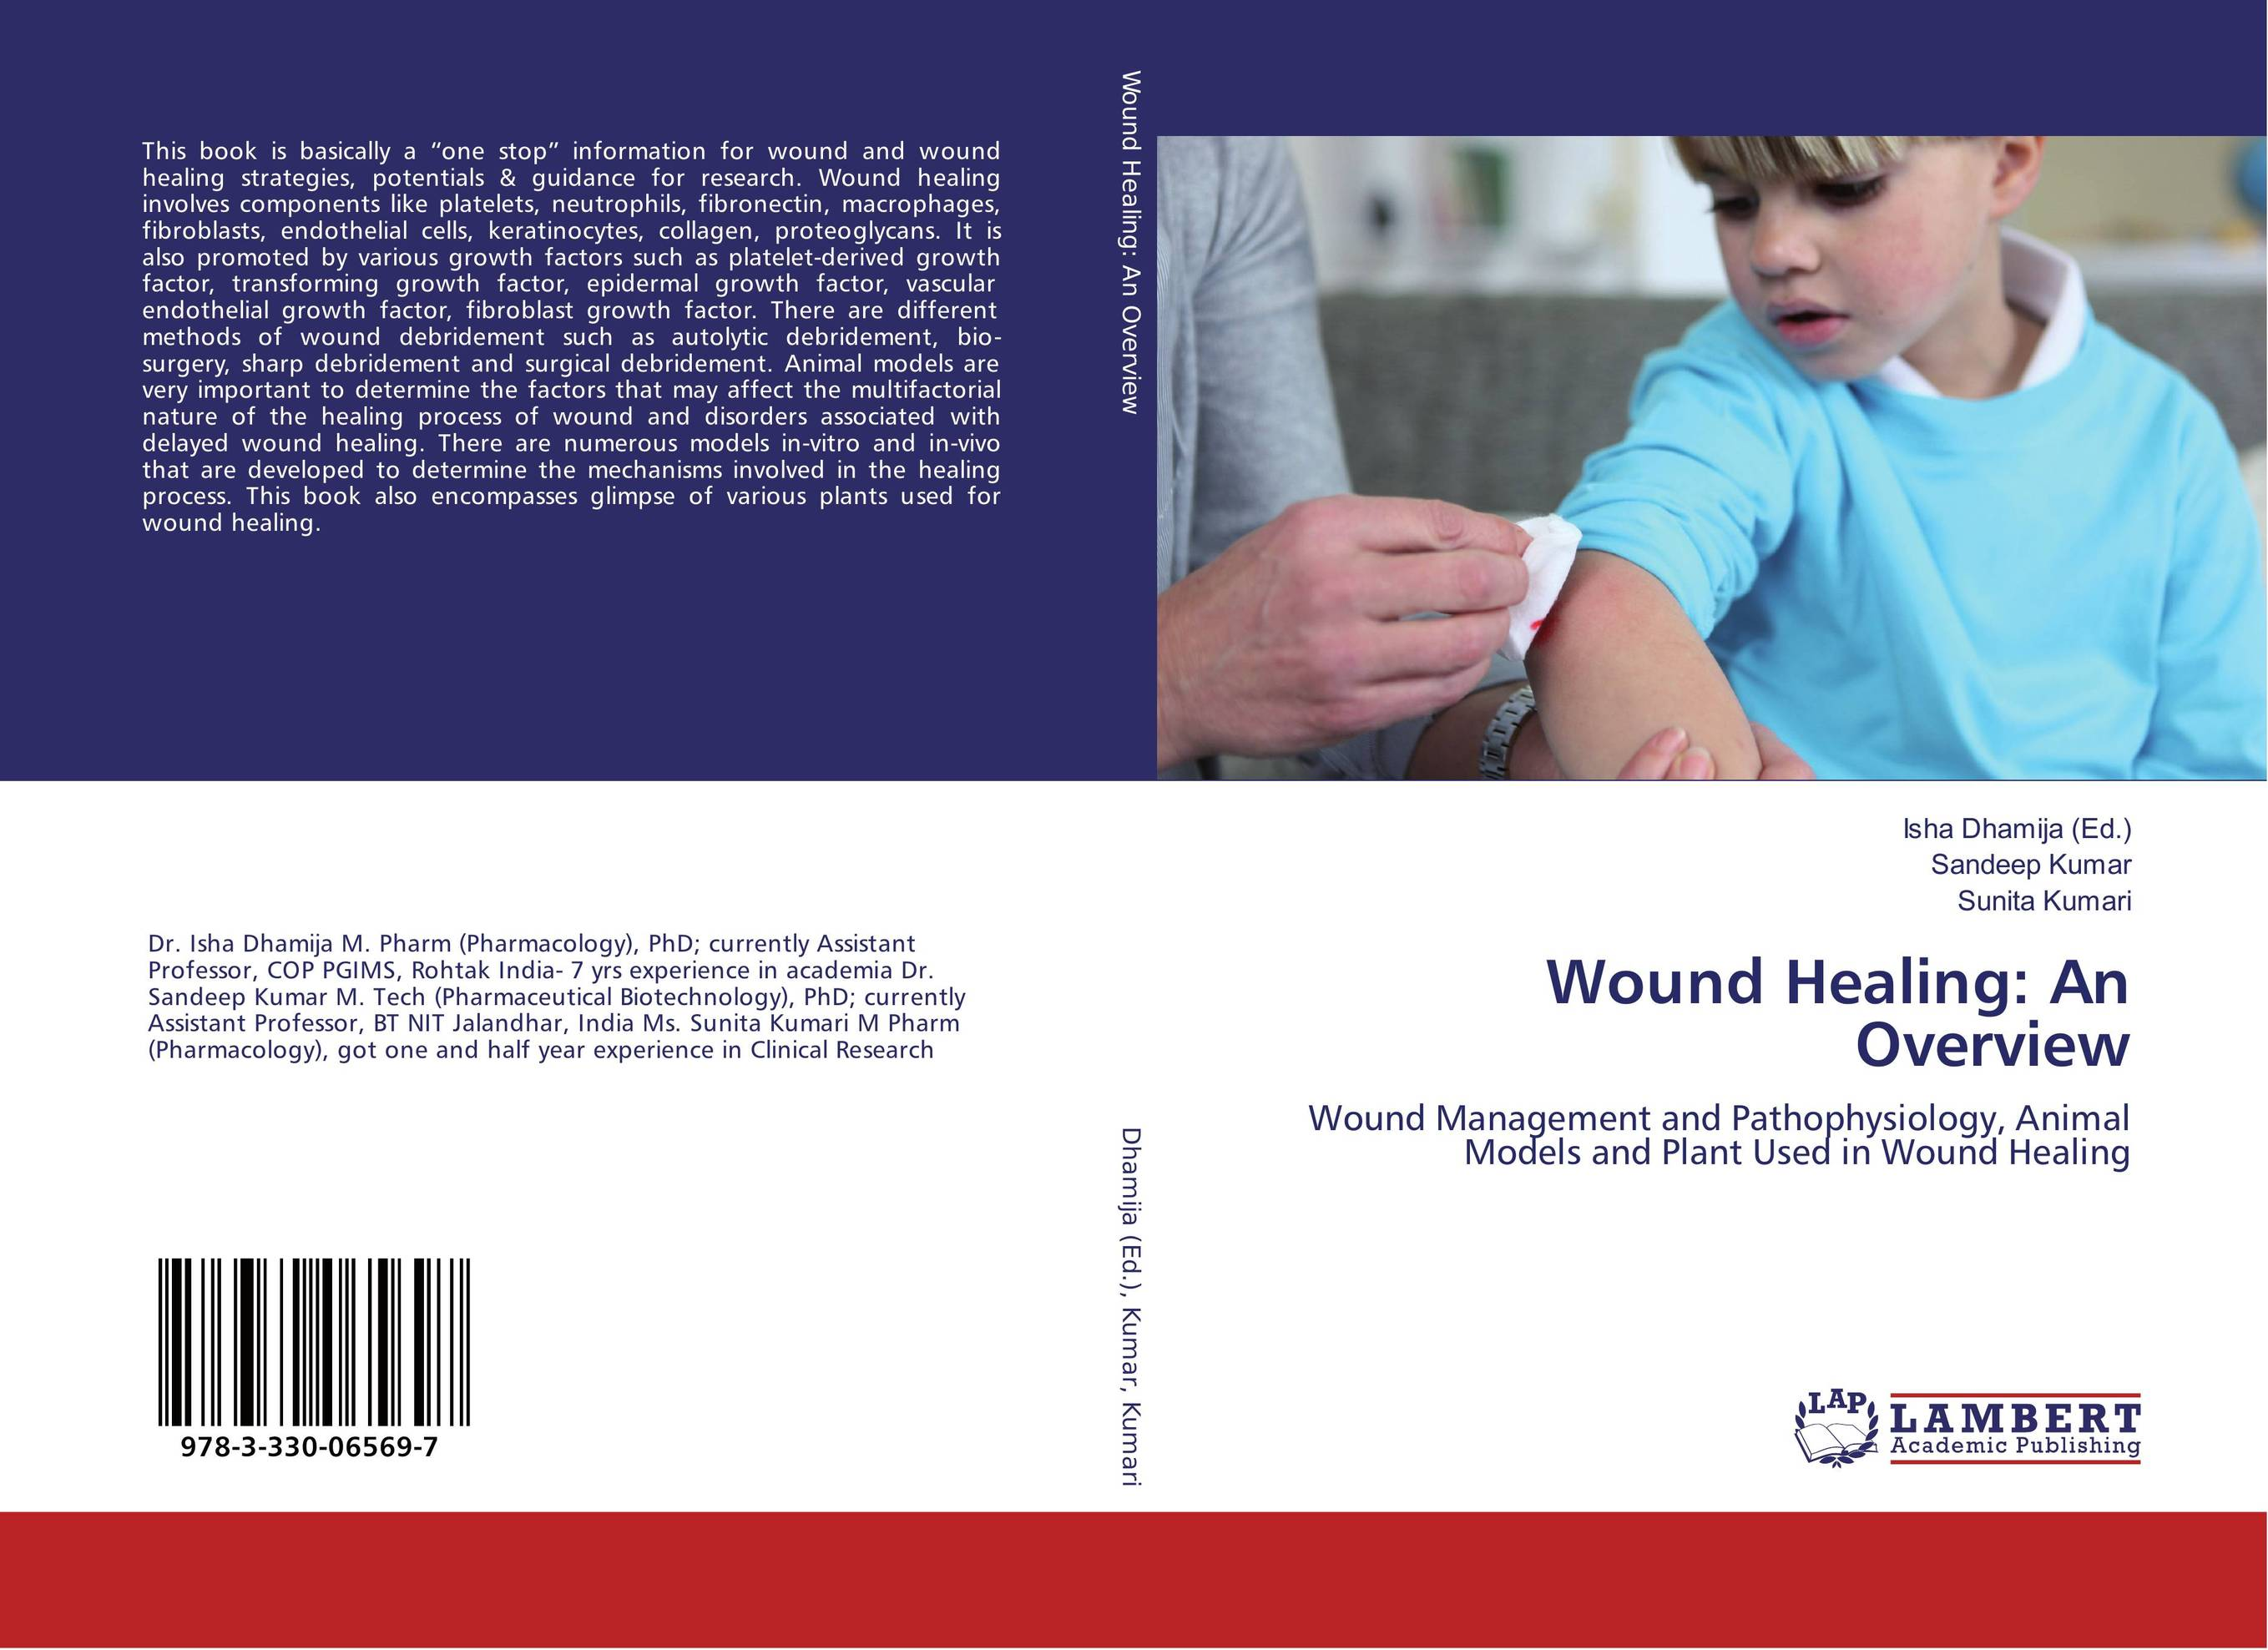 wound healing research papers University of notre dame researchers have, for the first time, identified the enzymes that are detrimental to diabetic wound healing and those that are beneficial to repair the wound.